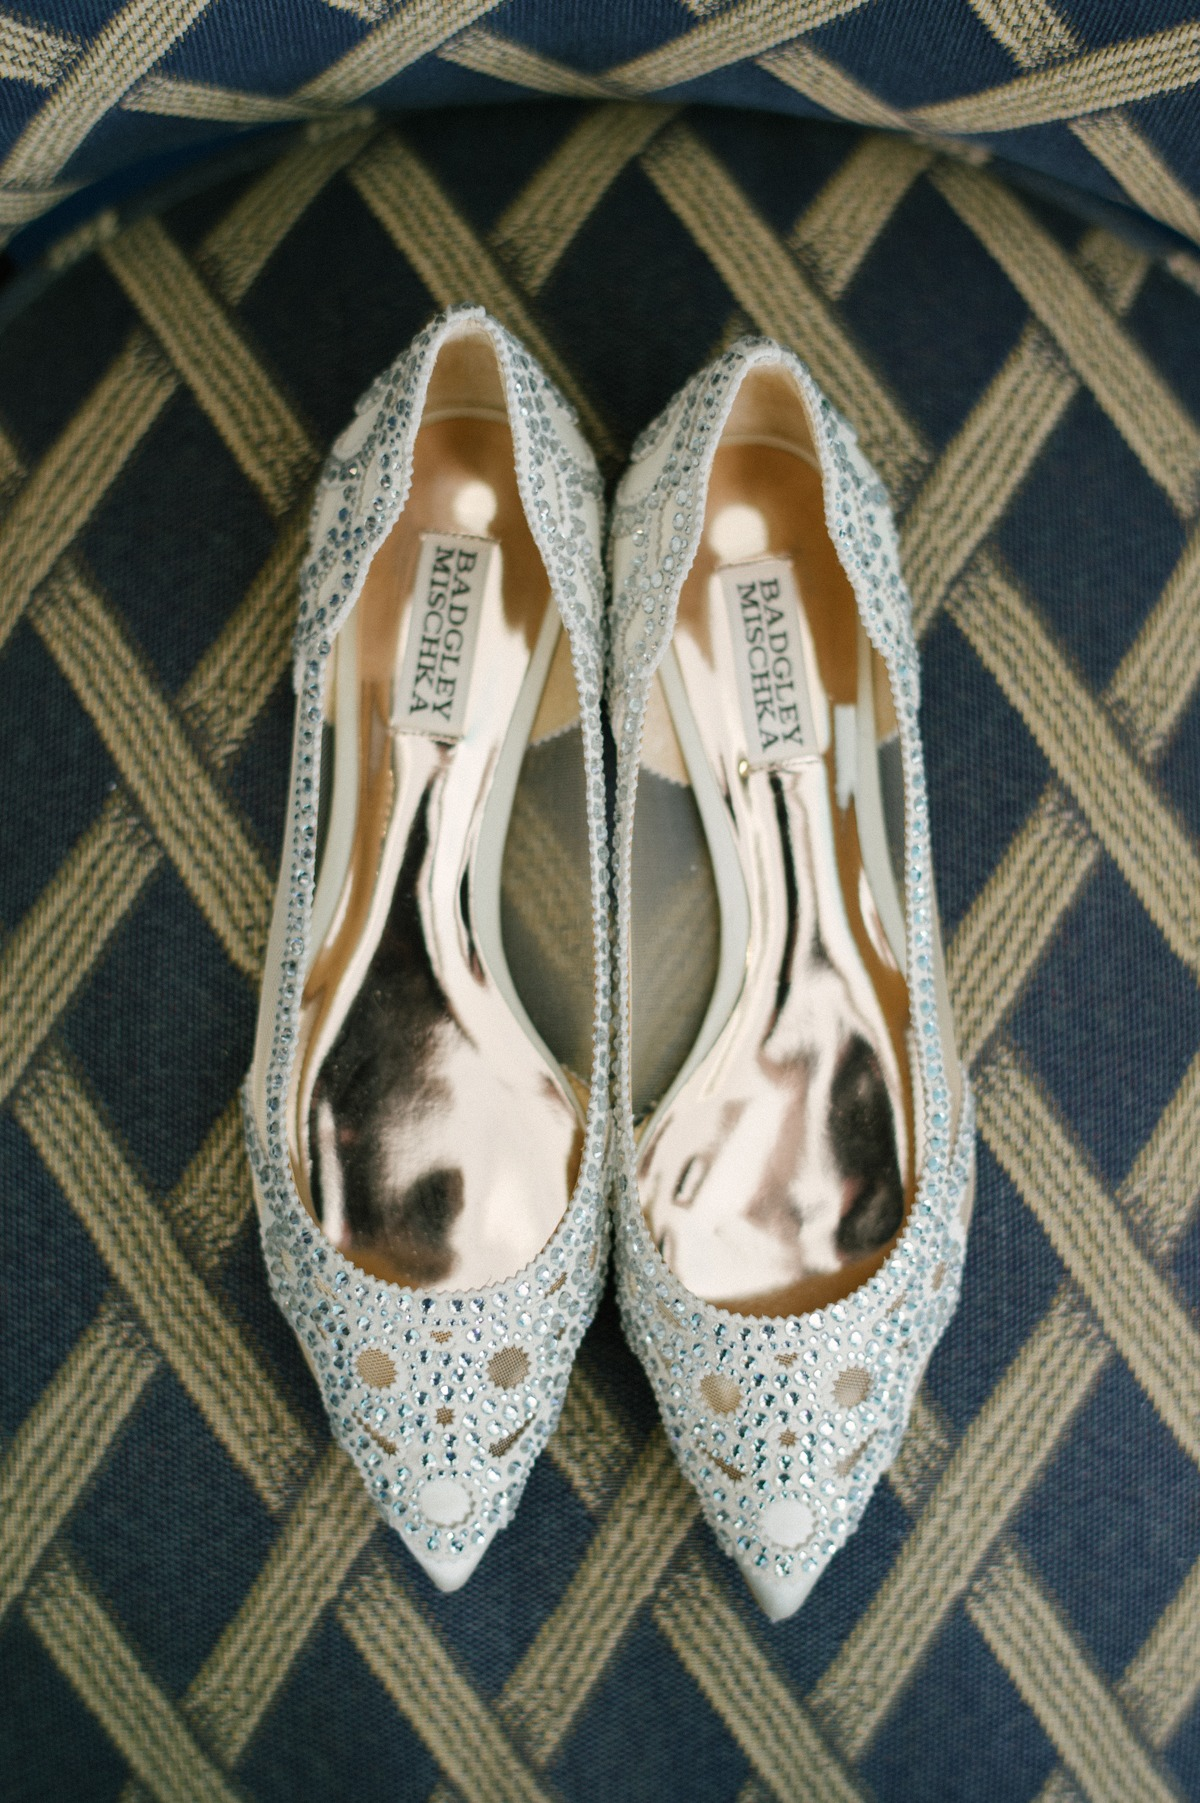 Badgley Mischka wedding flats